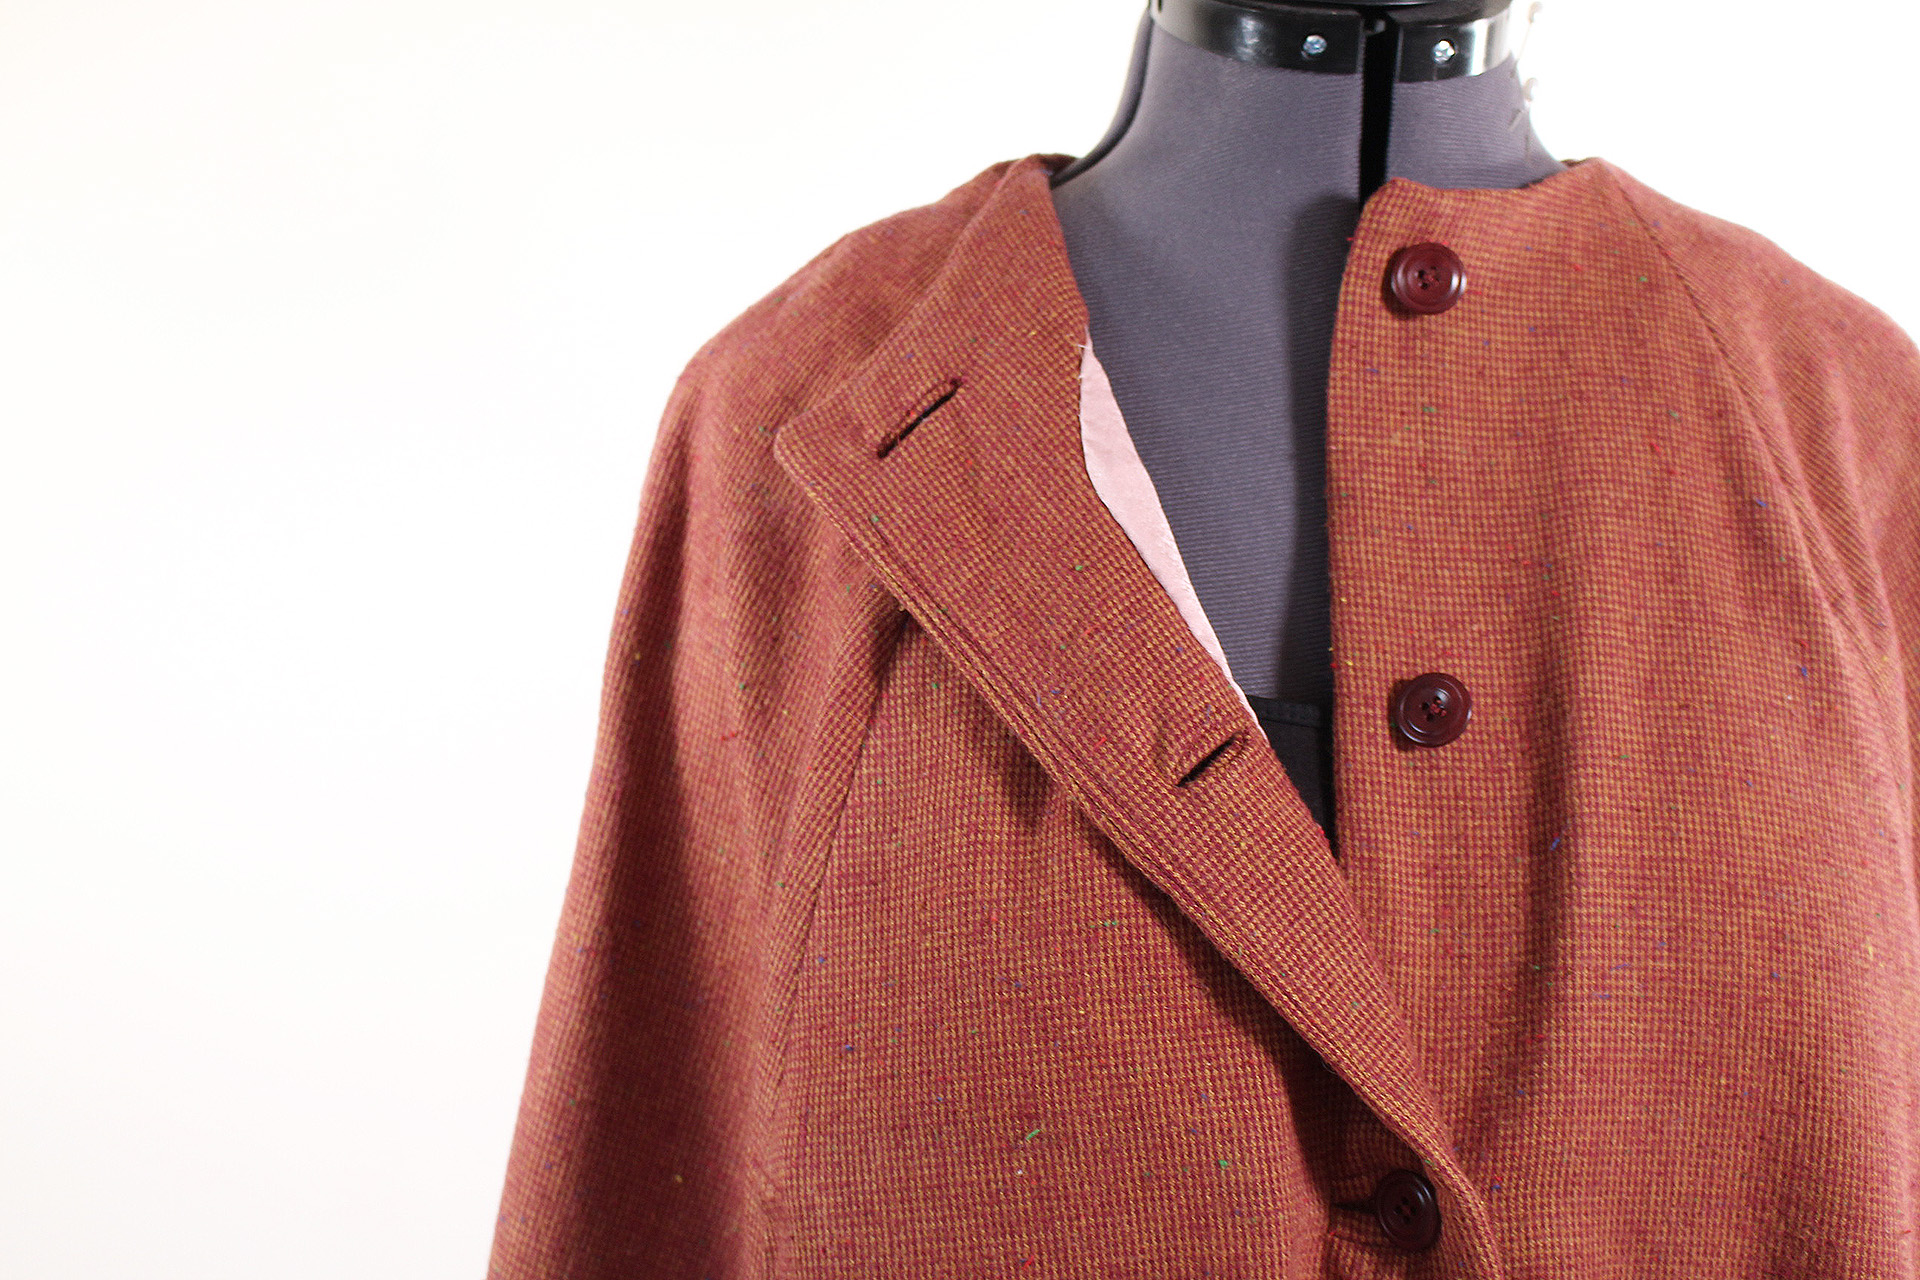 The Seamwork Camden cape, video walk through, with information on how to upgrade and expand on this great vintage style cape | Vintage on Tap